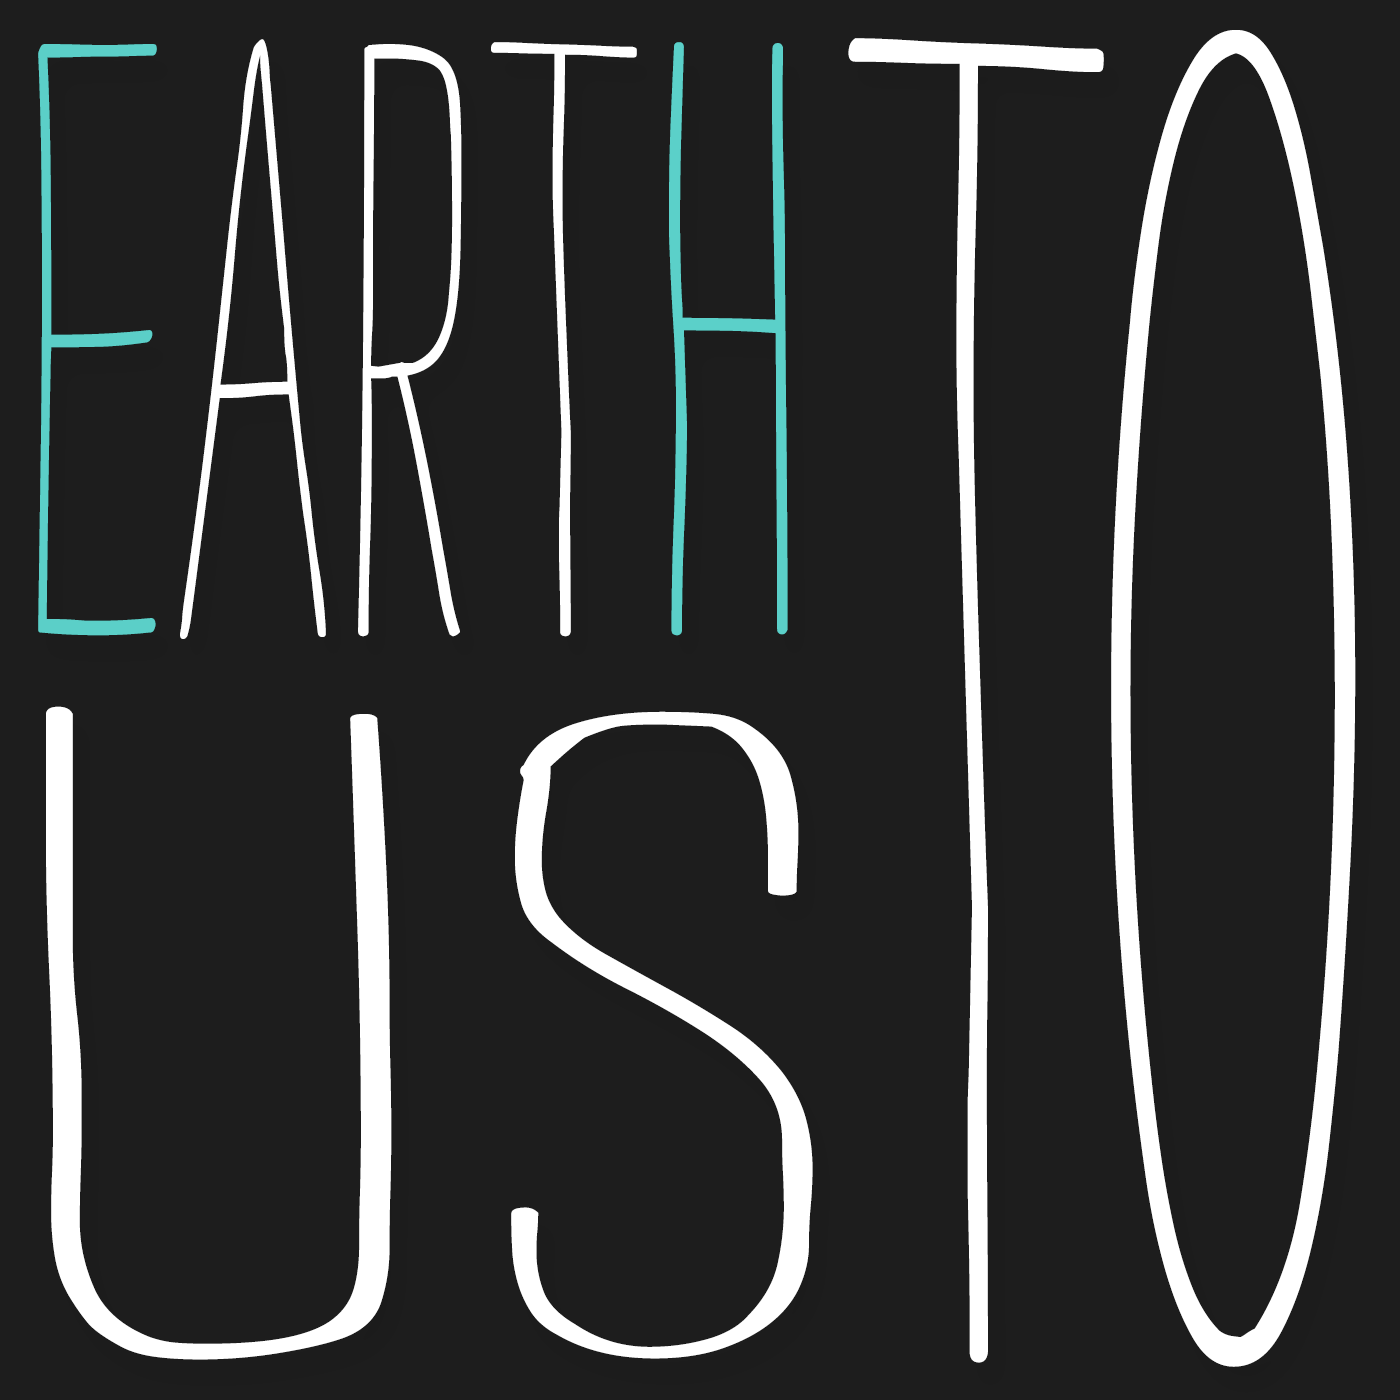 ETU - Earth To Us